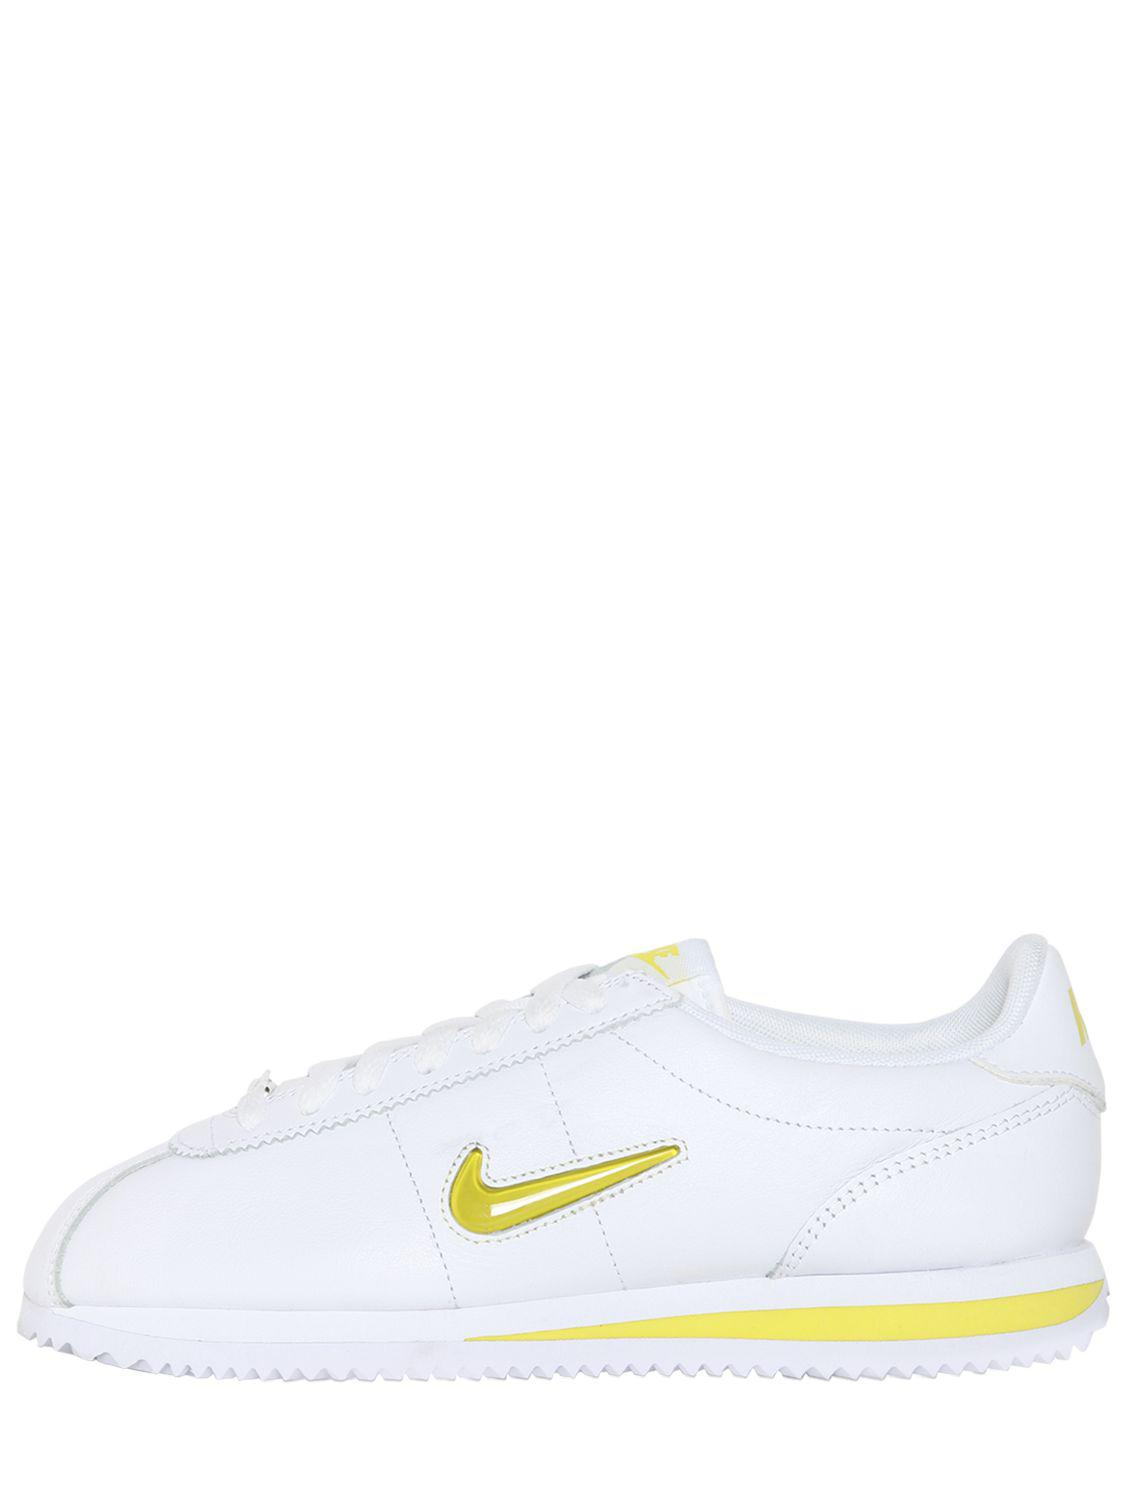 detailed look 4345c 9f970 Nike. Women s White Cortez Basic Jewel 18 Trainers